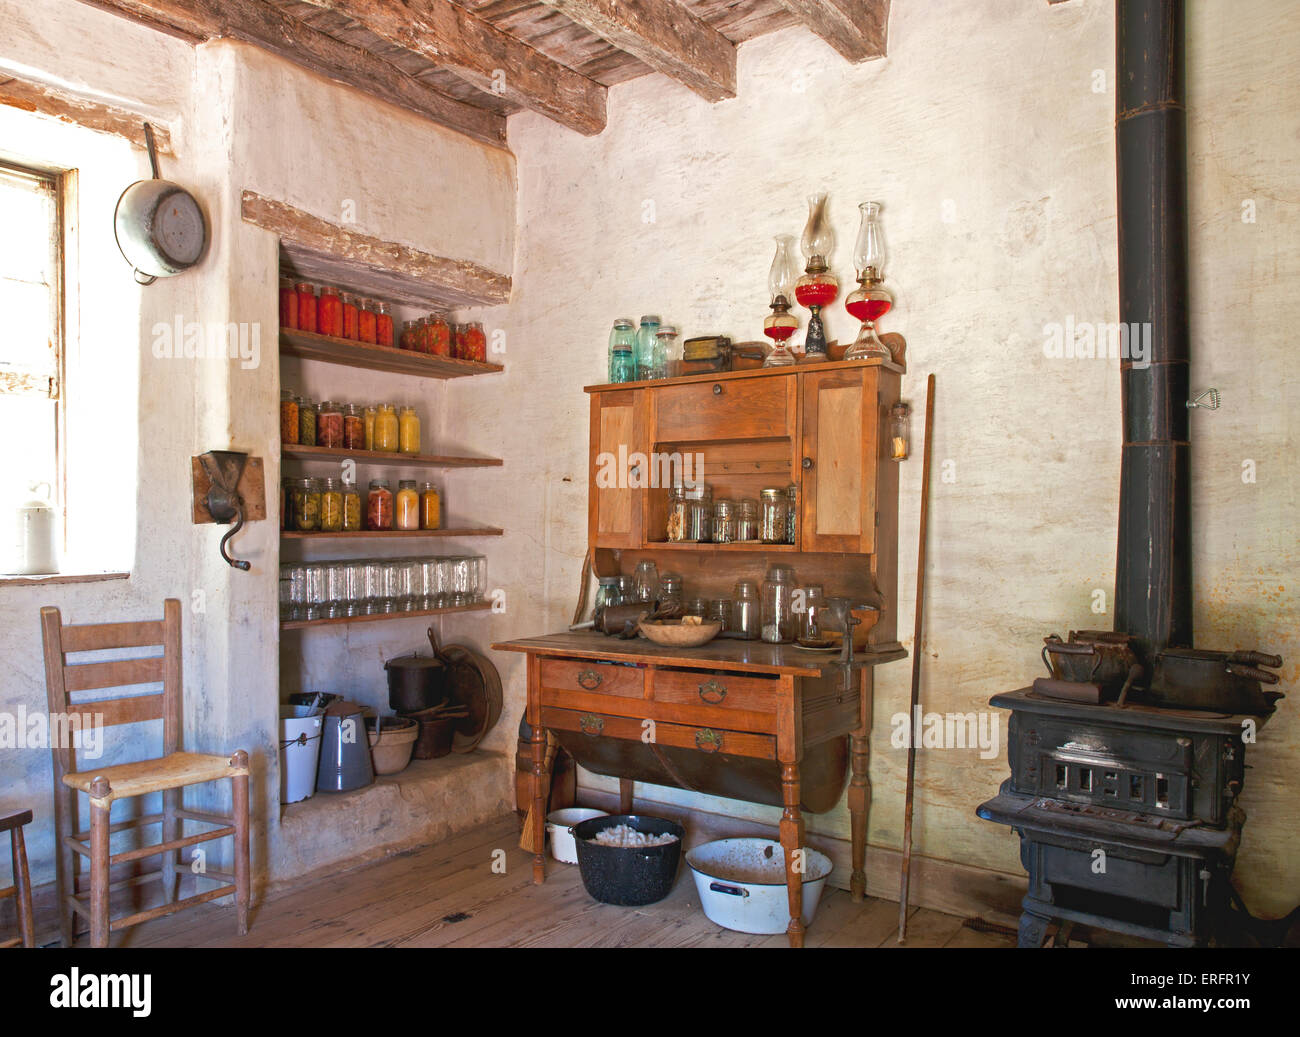 Early 1900s farm kitchen with no electricity or running water at